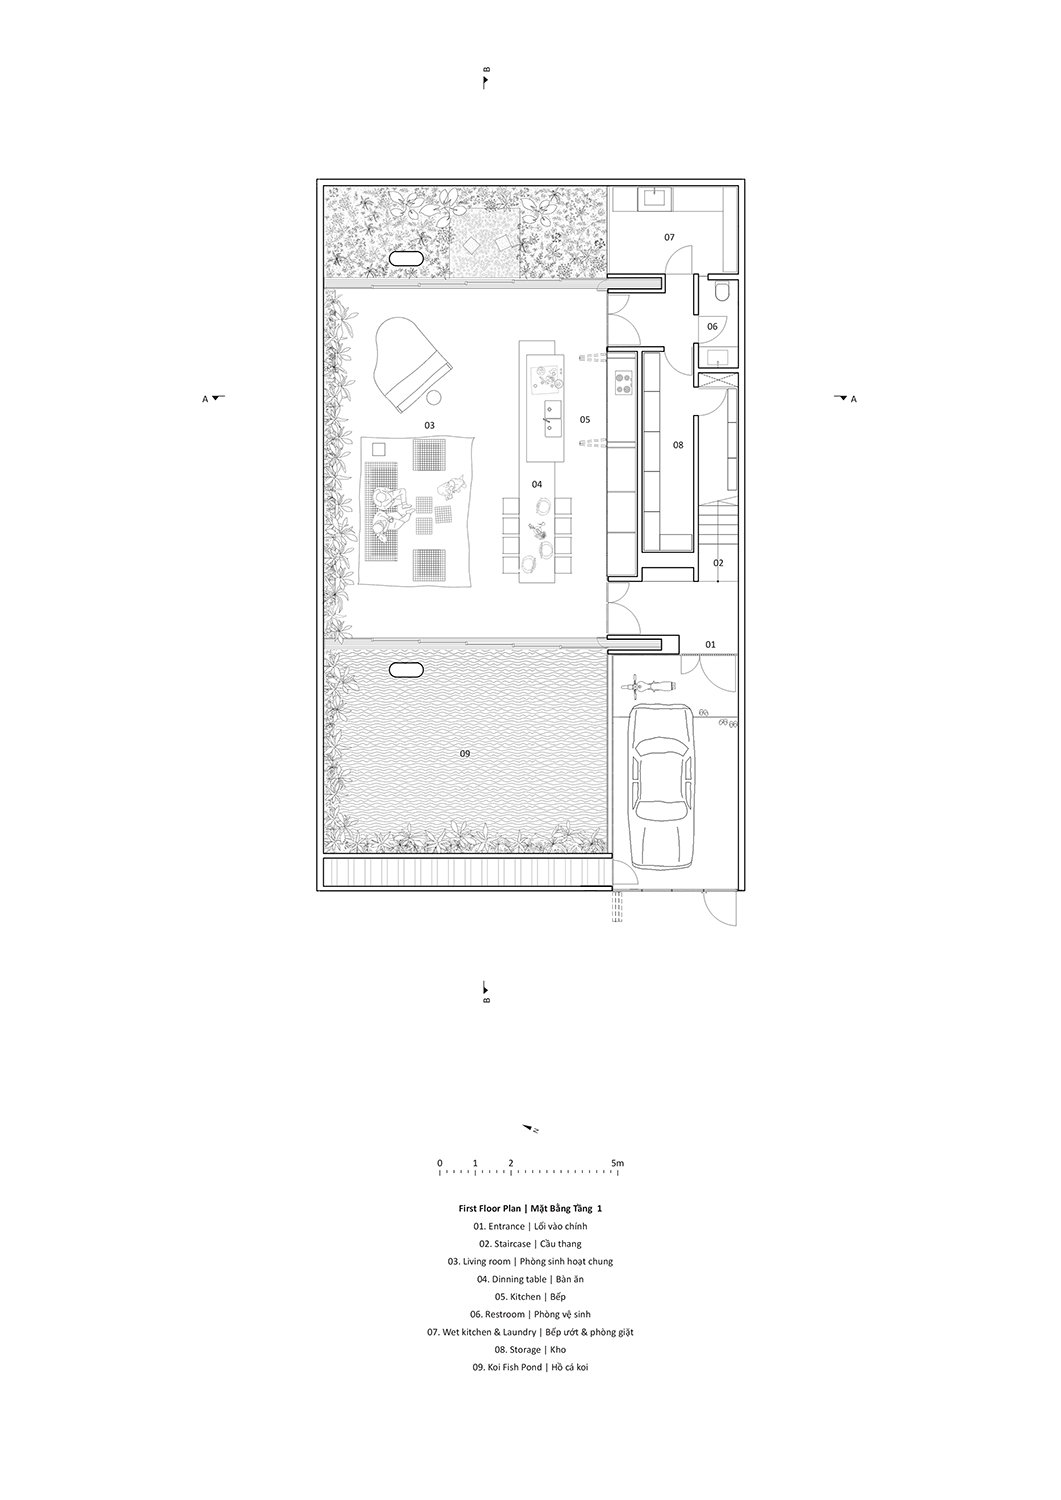 First floor plan Le Thanh Thuong}